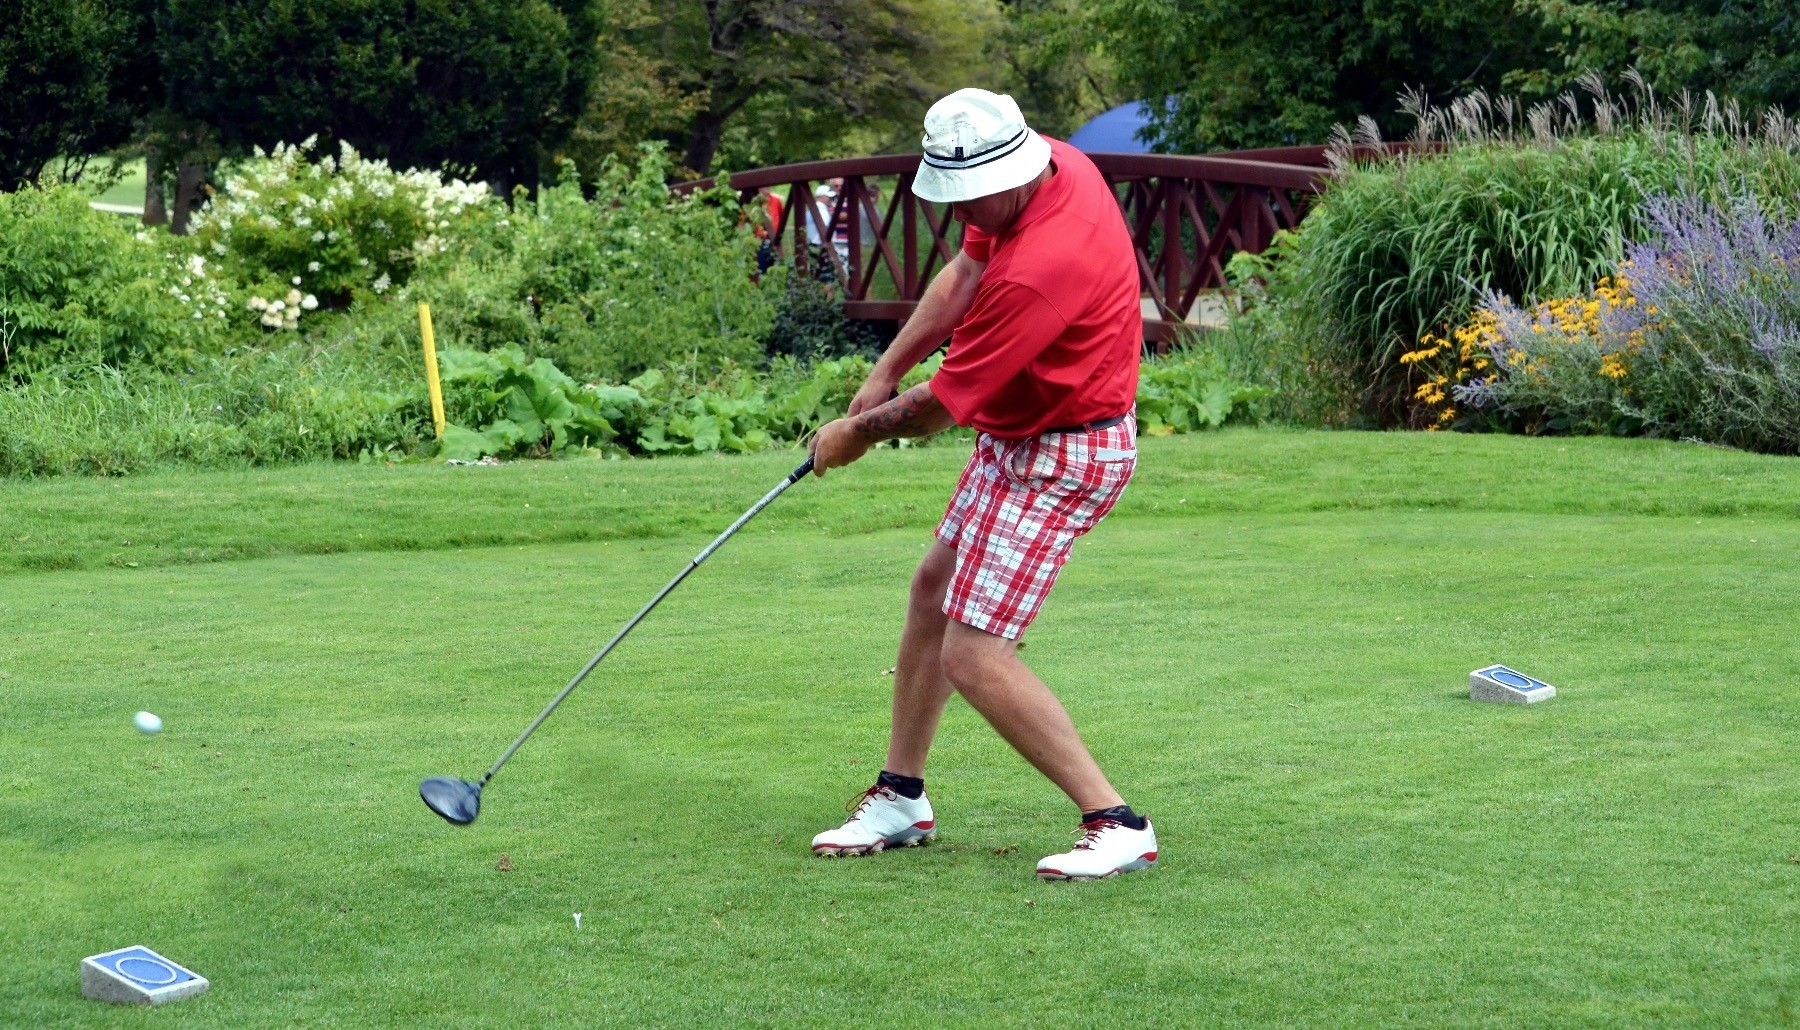 A left-handed golfer hits the ball during a tournament.